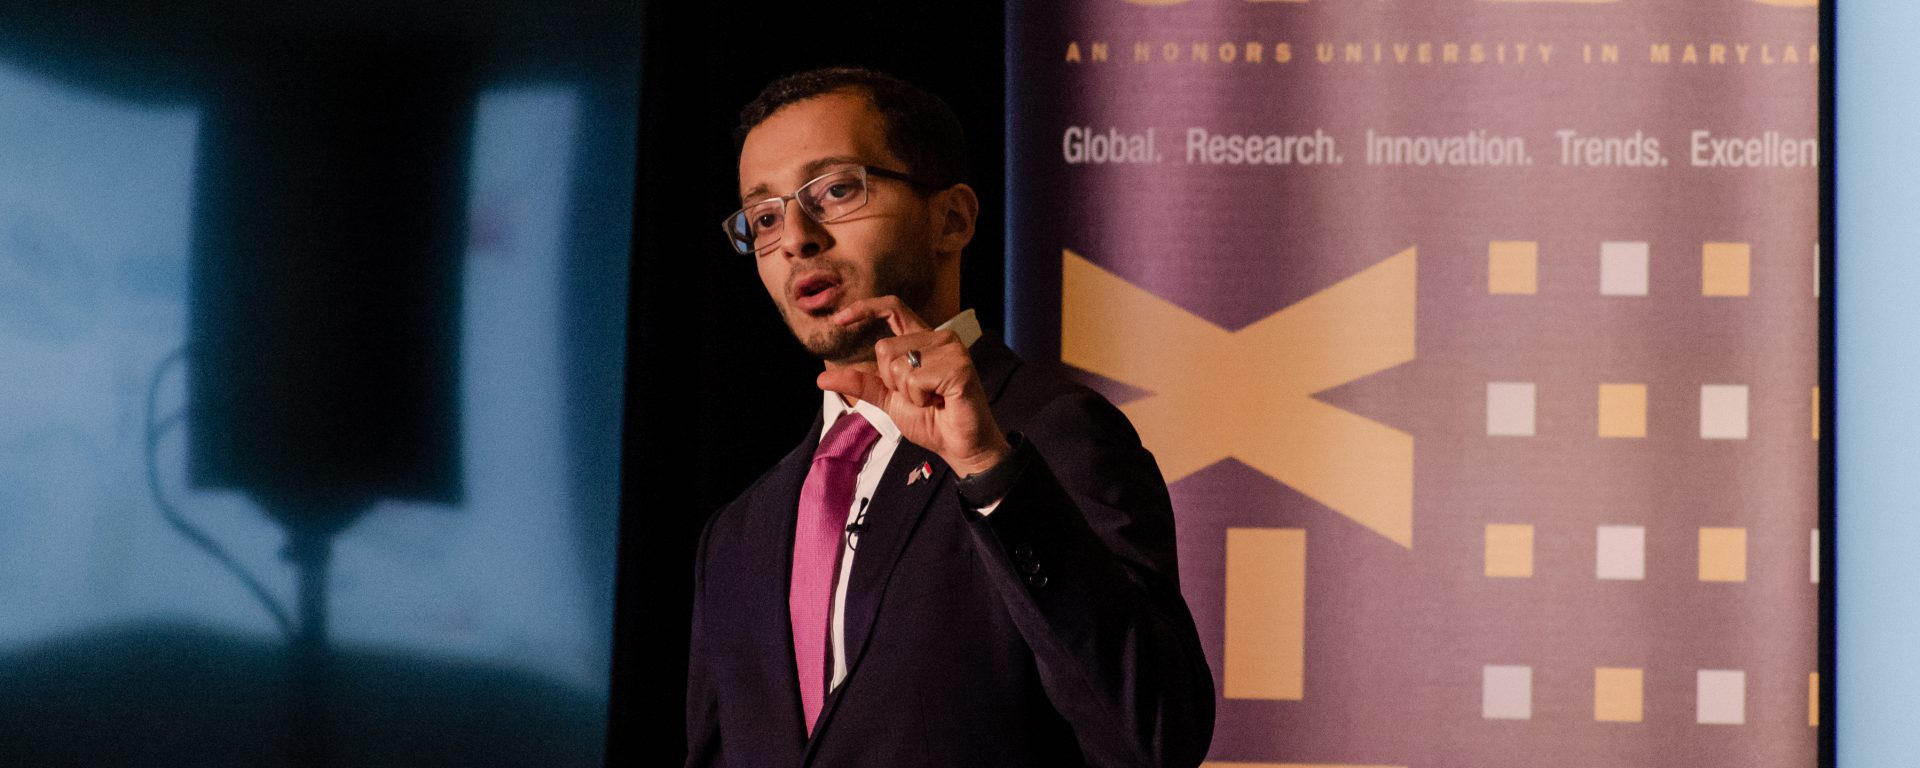 UMBC's Mustafa Al-Adhami wins national Three-Minute Thesis competition